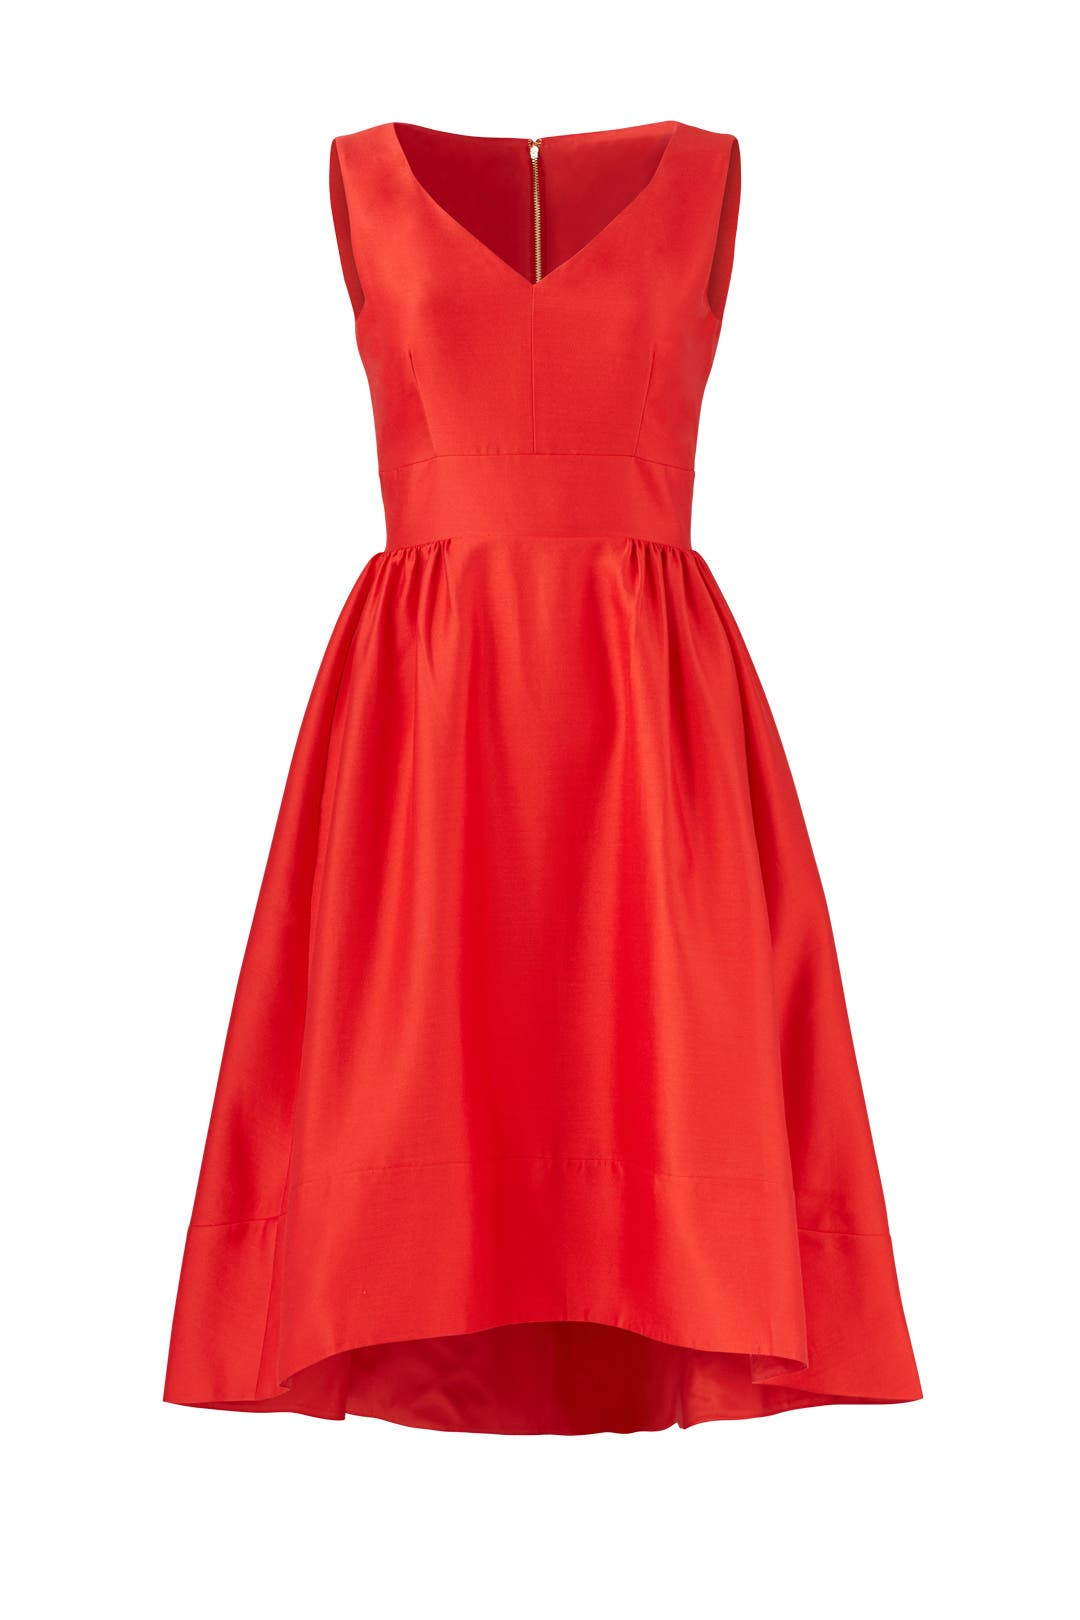 Red dress age 8 zip code